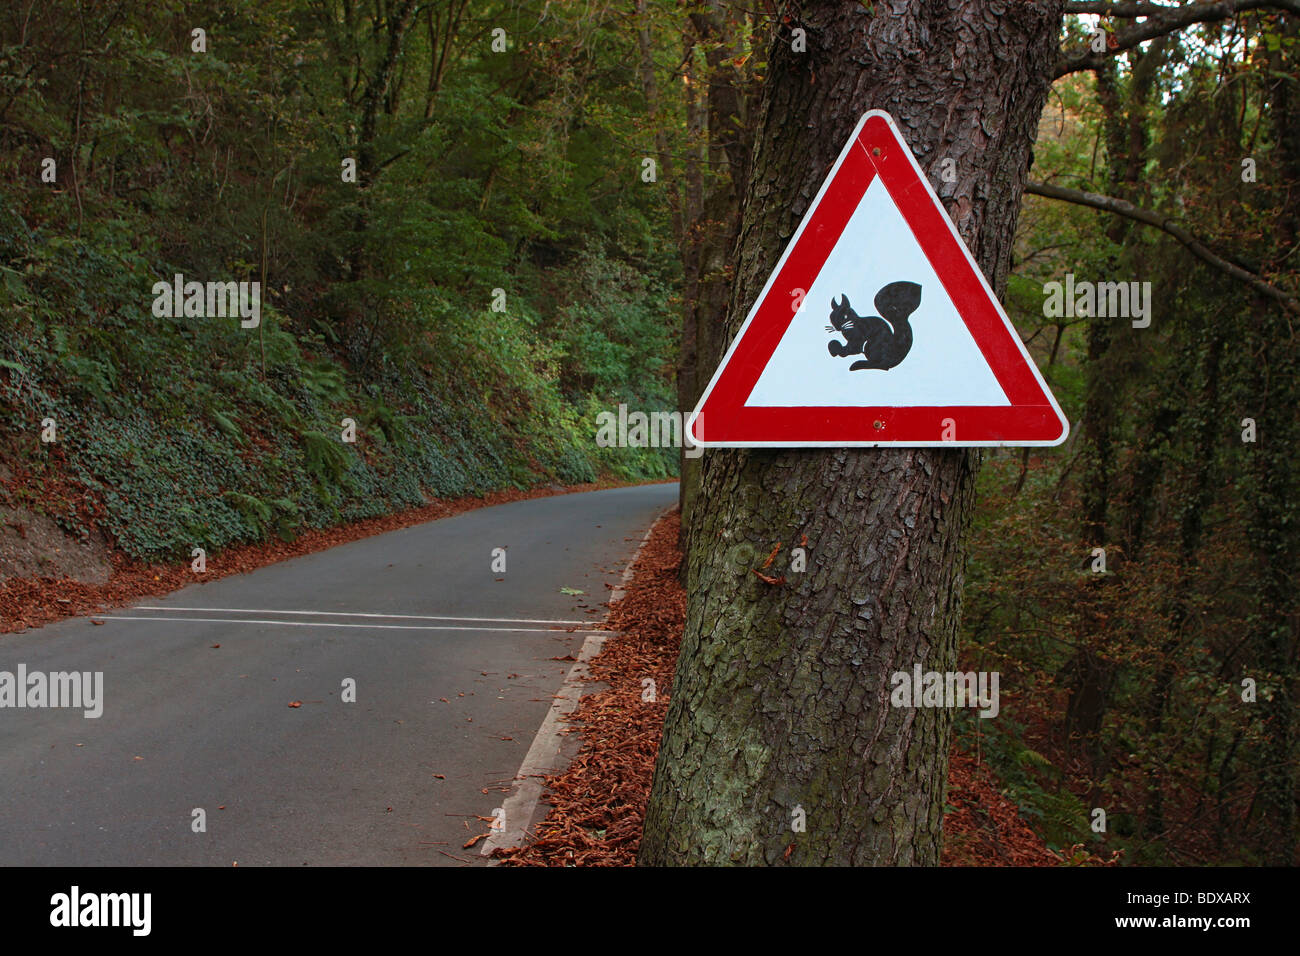 Warning sign, caution squirrels at a forest road - Stock Image